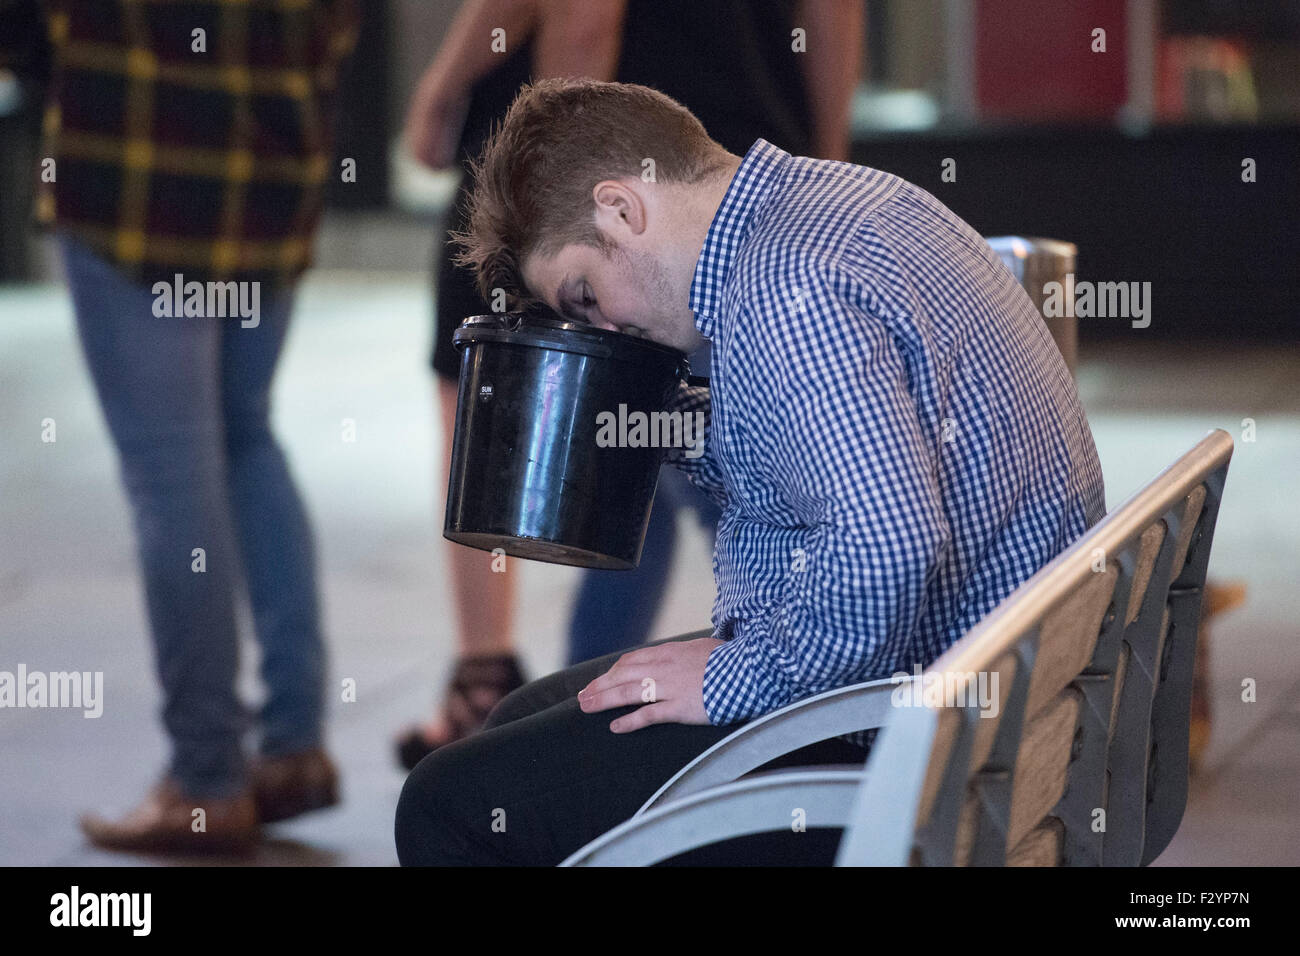 A drunk man collapsed after drinking too much alcohol. - Stock Image